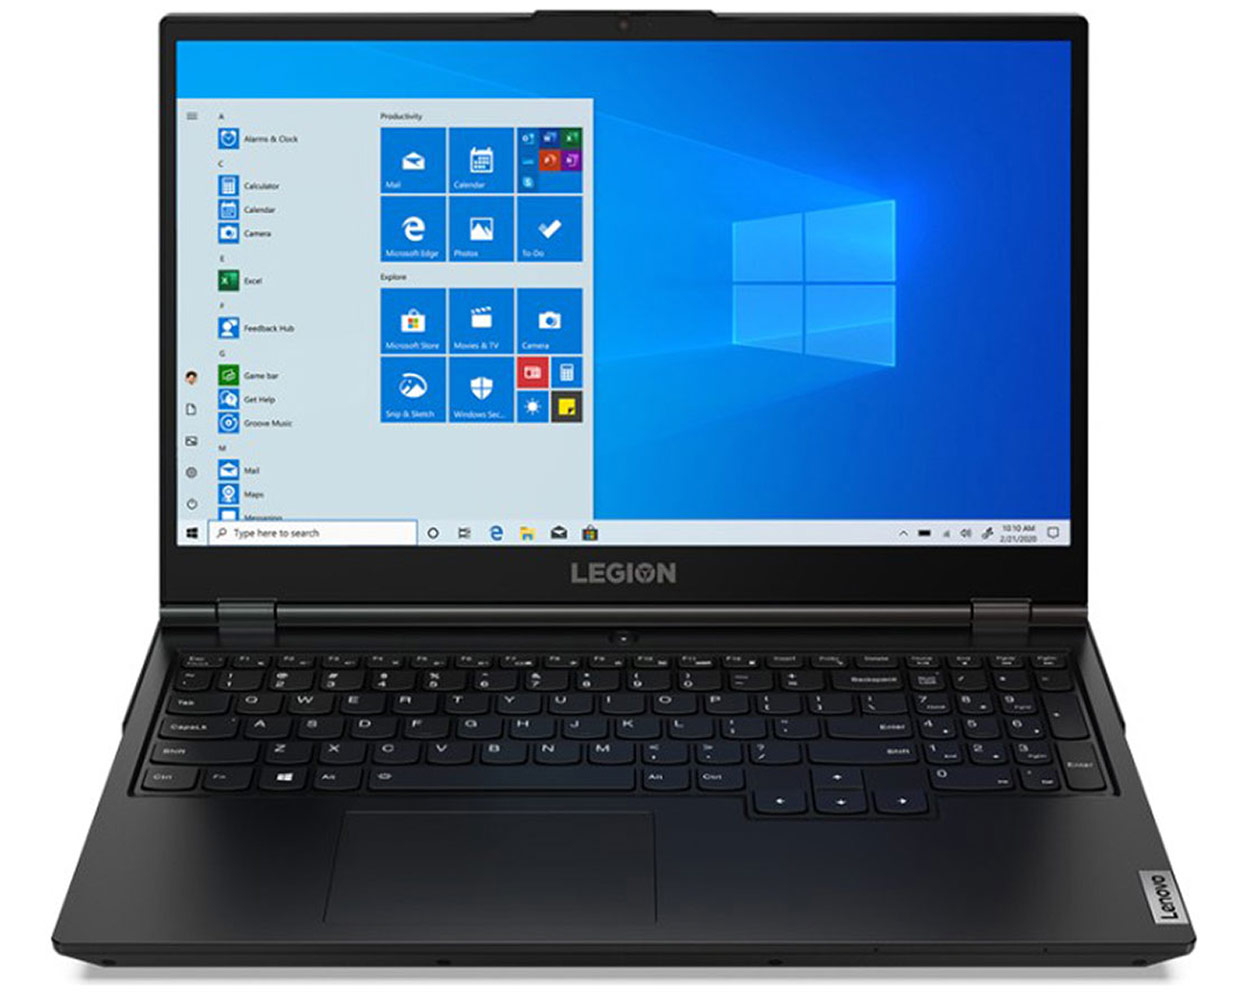 Lenovo Legion 5 - best overall laptop under 1000 dollars